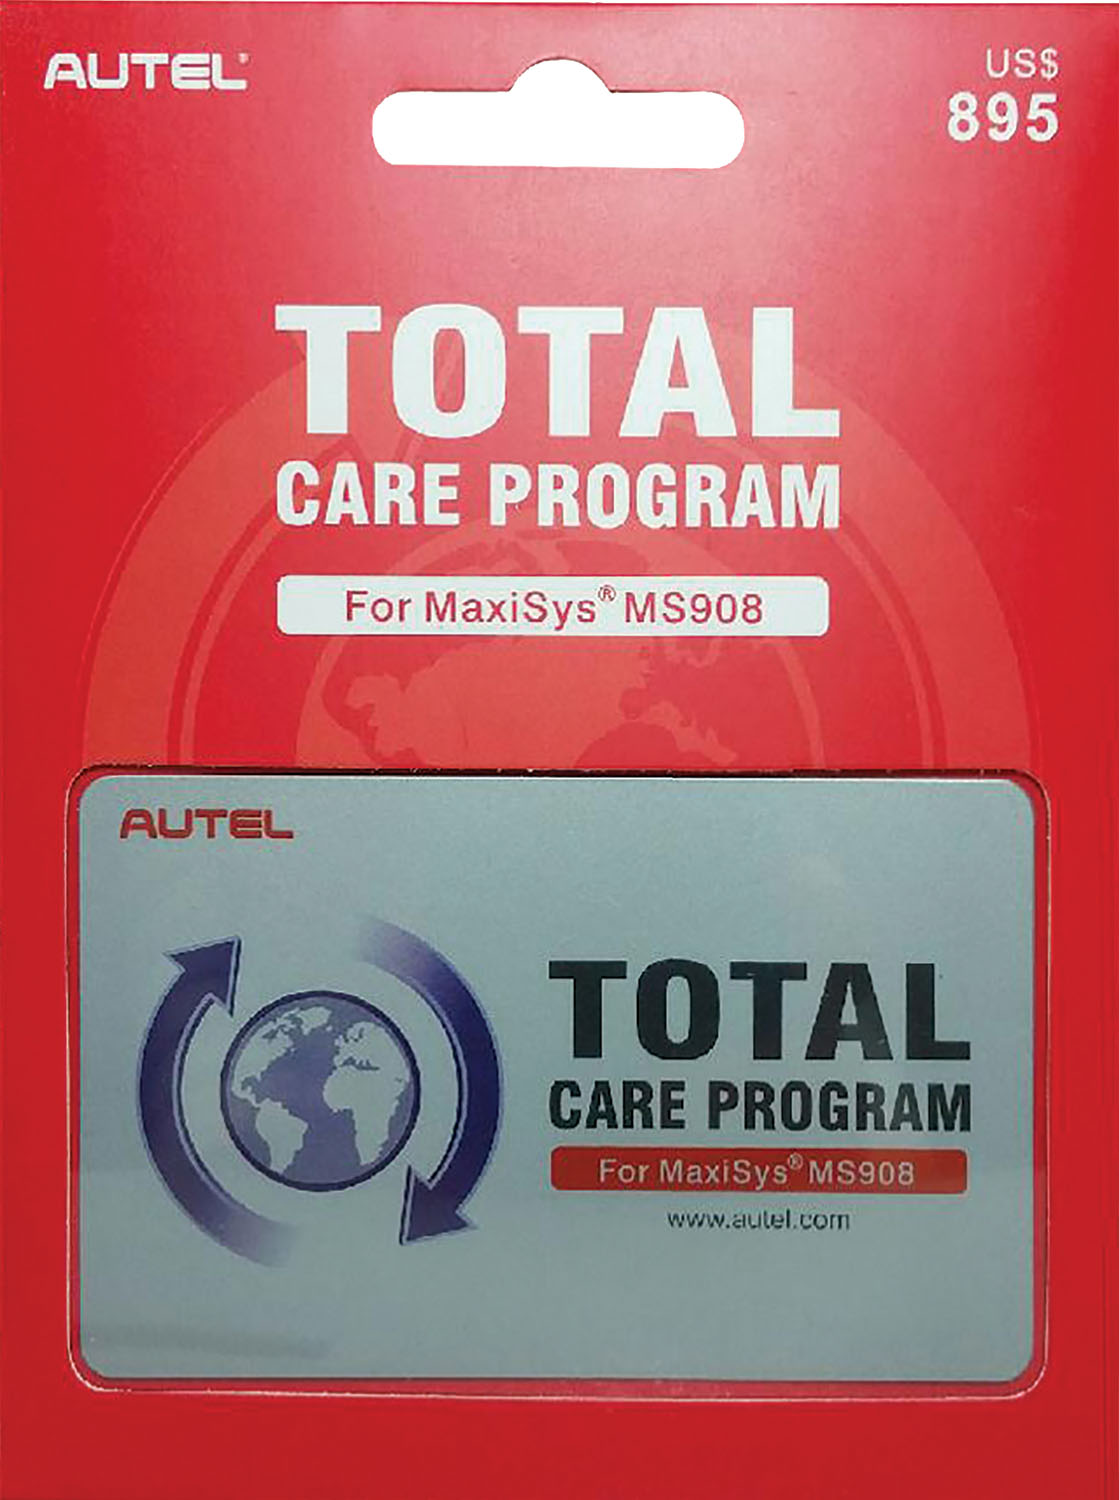 Autel 1 Year Software Update for MaxiSys® MS908 Complete Diagnostic System